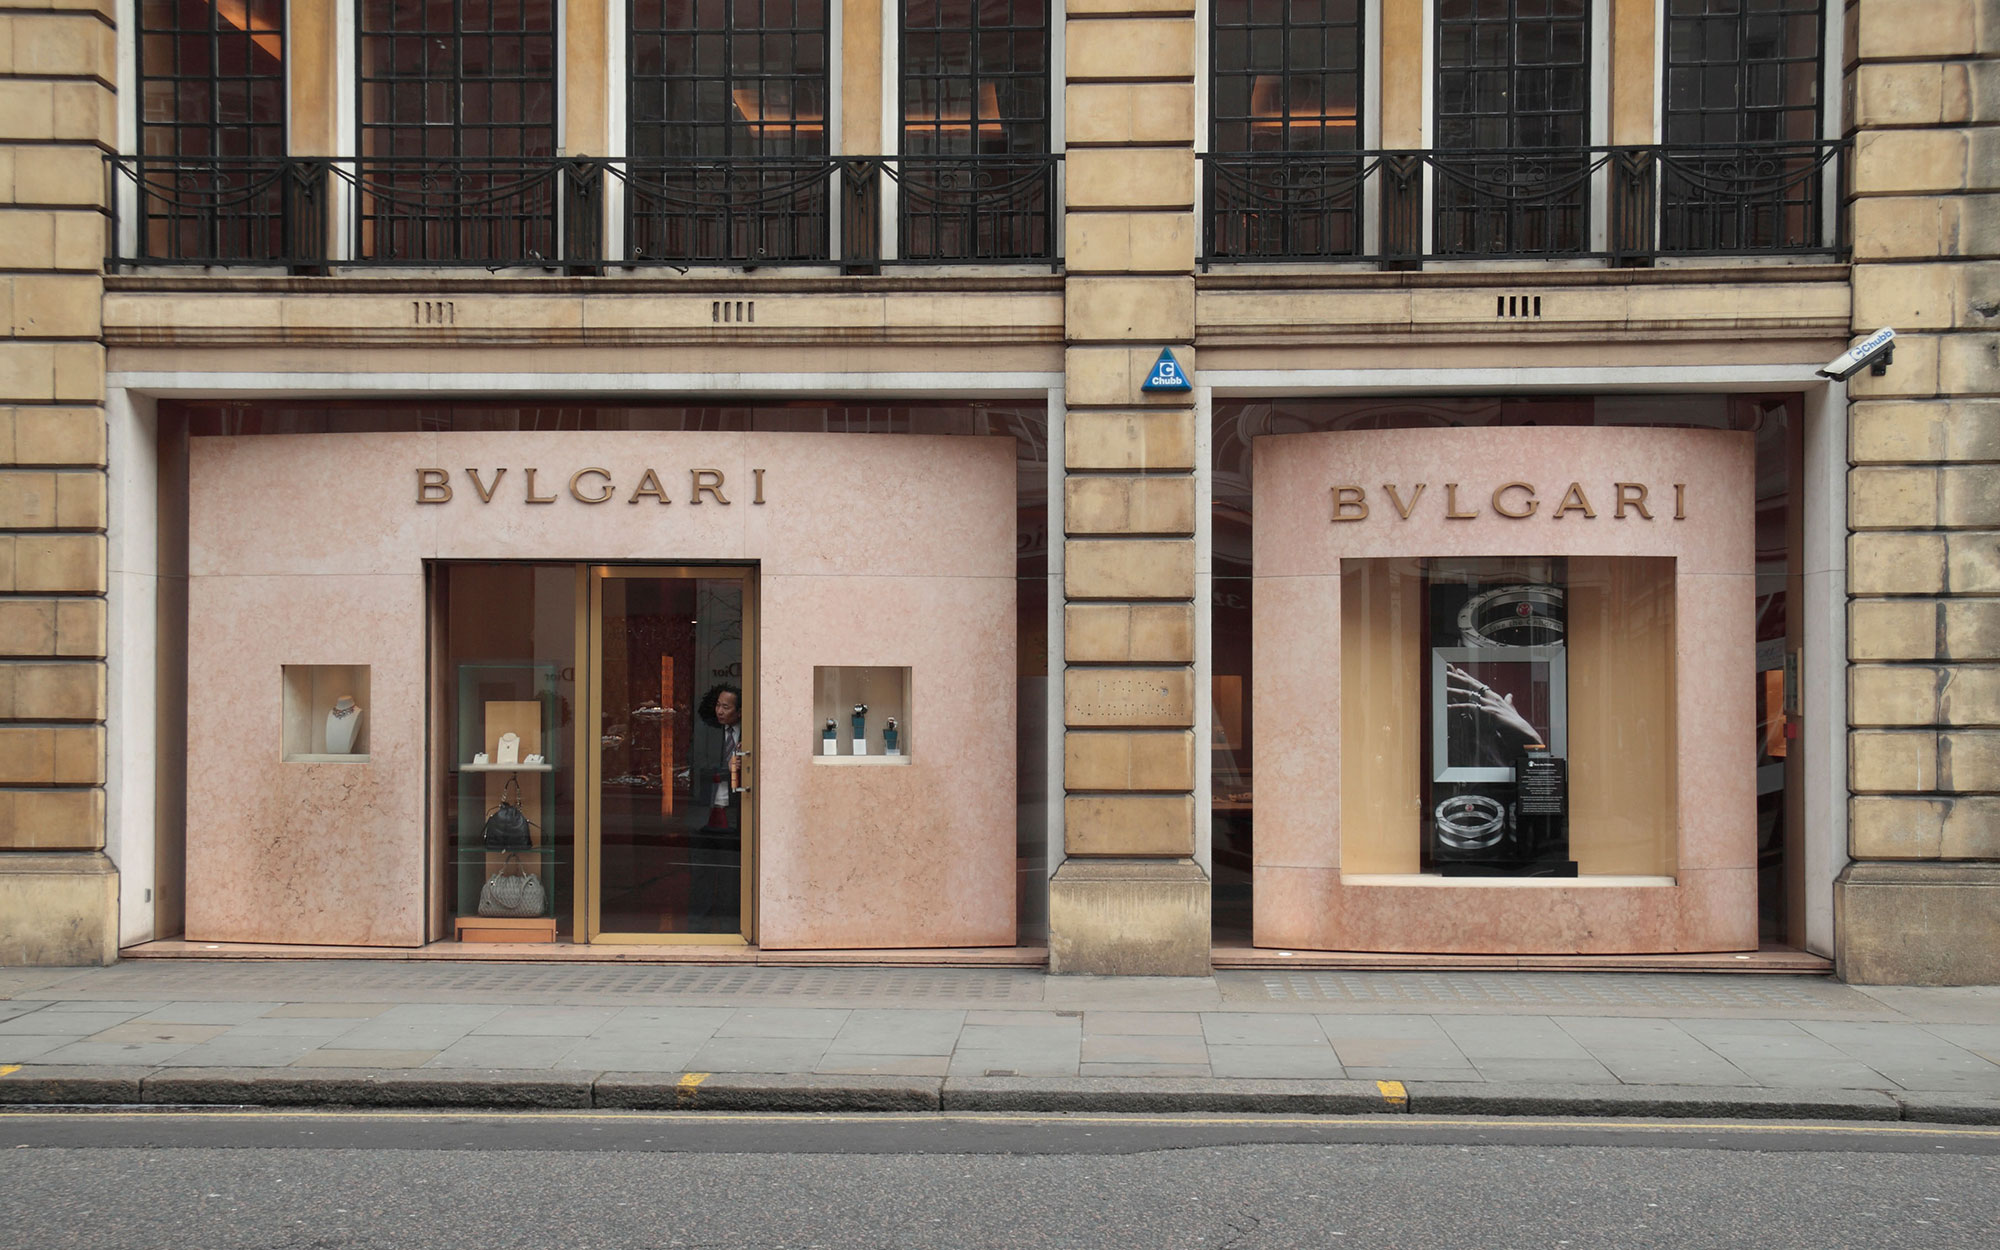 20 Secret Hotel Amenities Even the Concierge Doesn't Know About: VIP Shopping at Bulgari